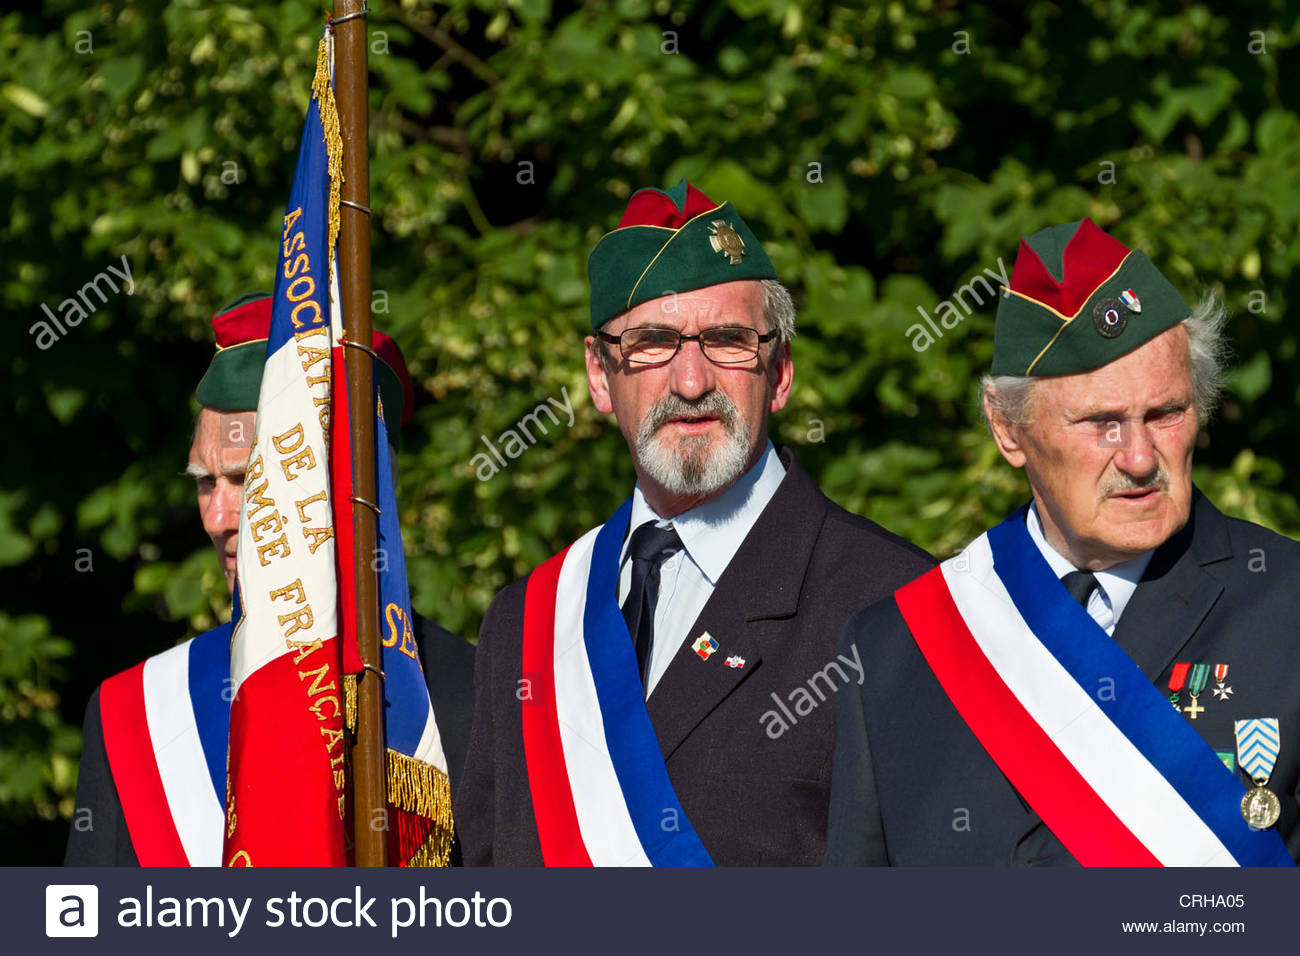 French Veterans with banner in Warsaw, Poland - Stock Image